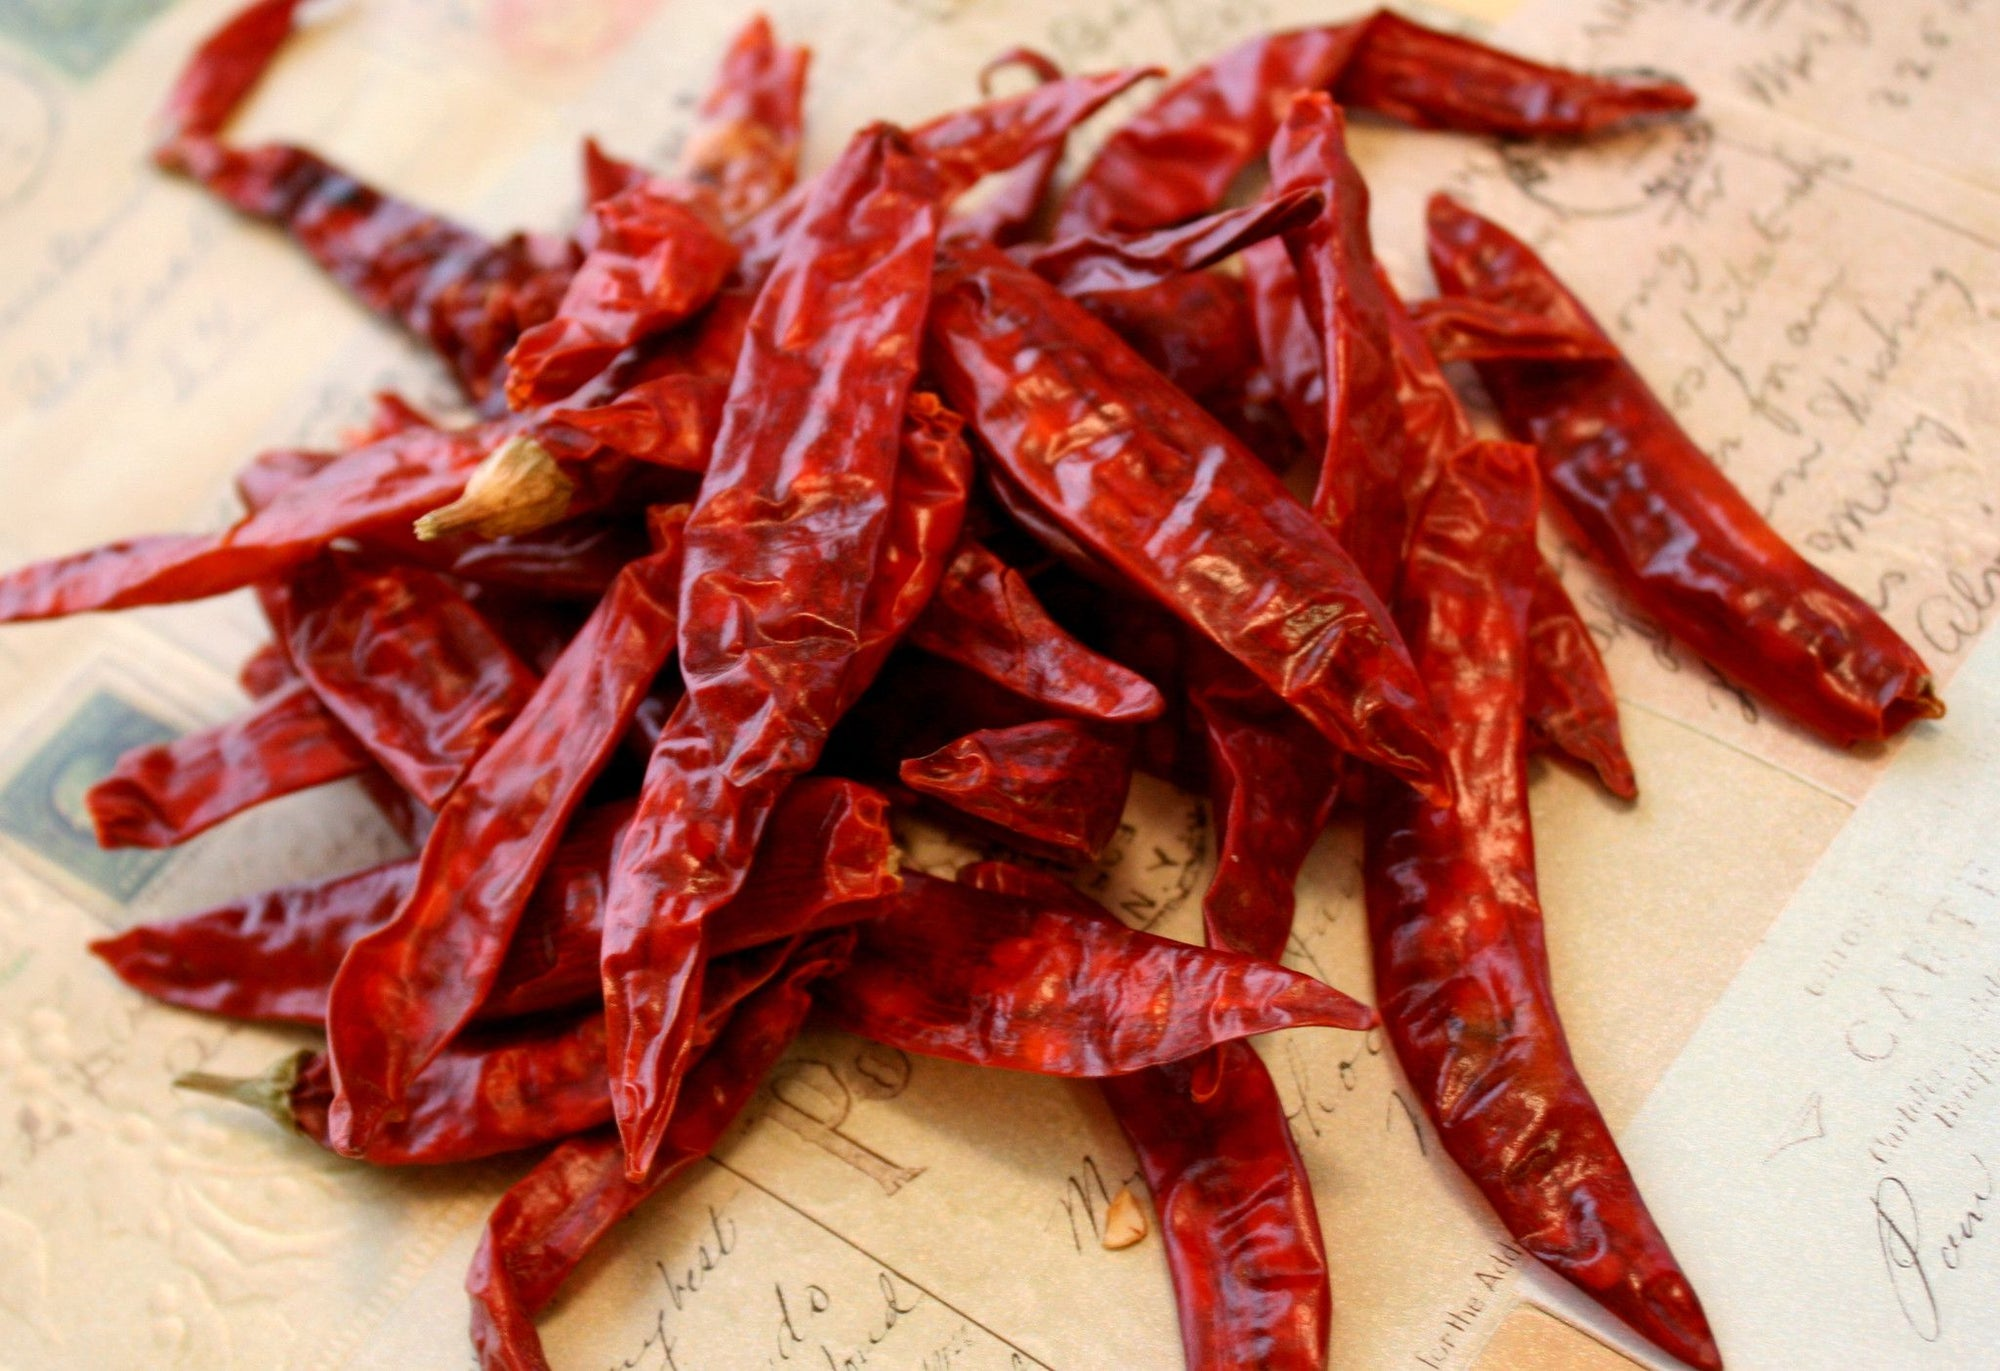 Chilli (Dried / Whole) 50g - Spice Kitchen - Spices, Spice Blends, Gifts & Cookware